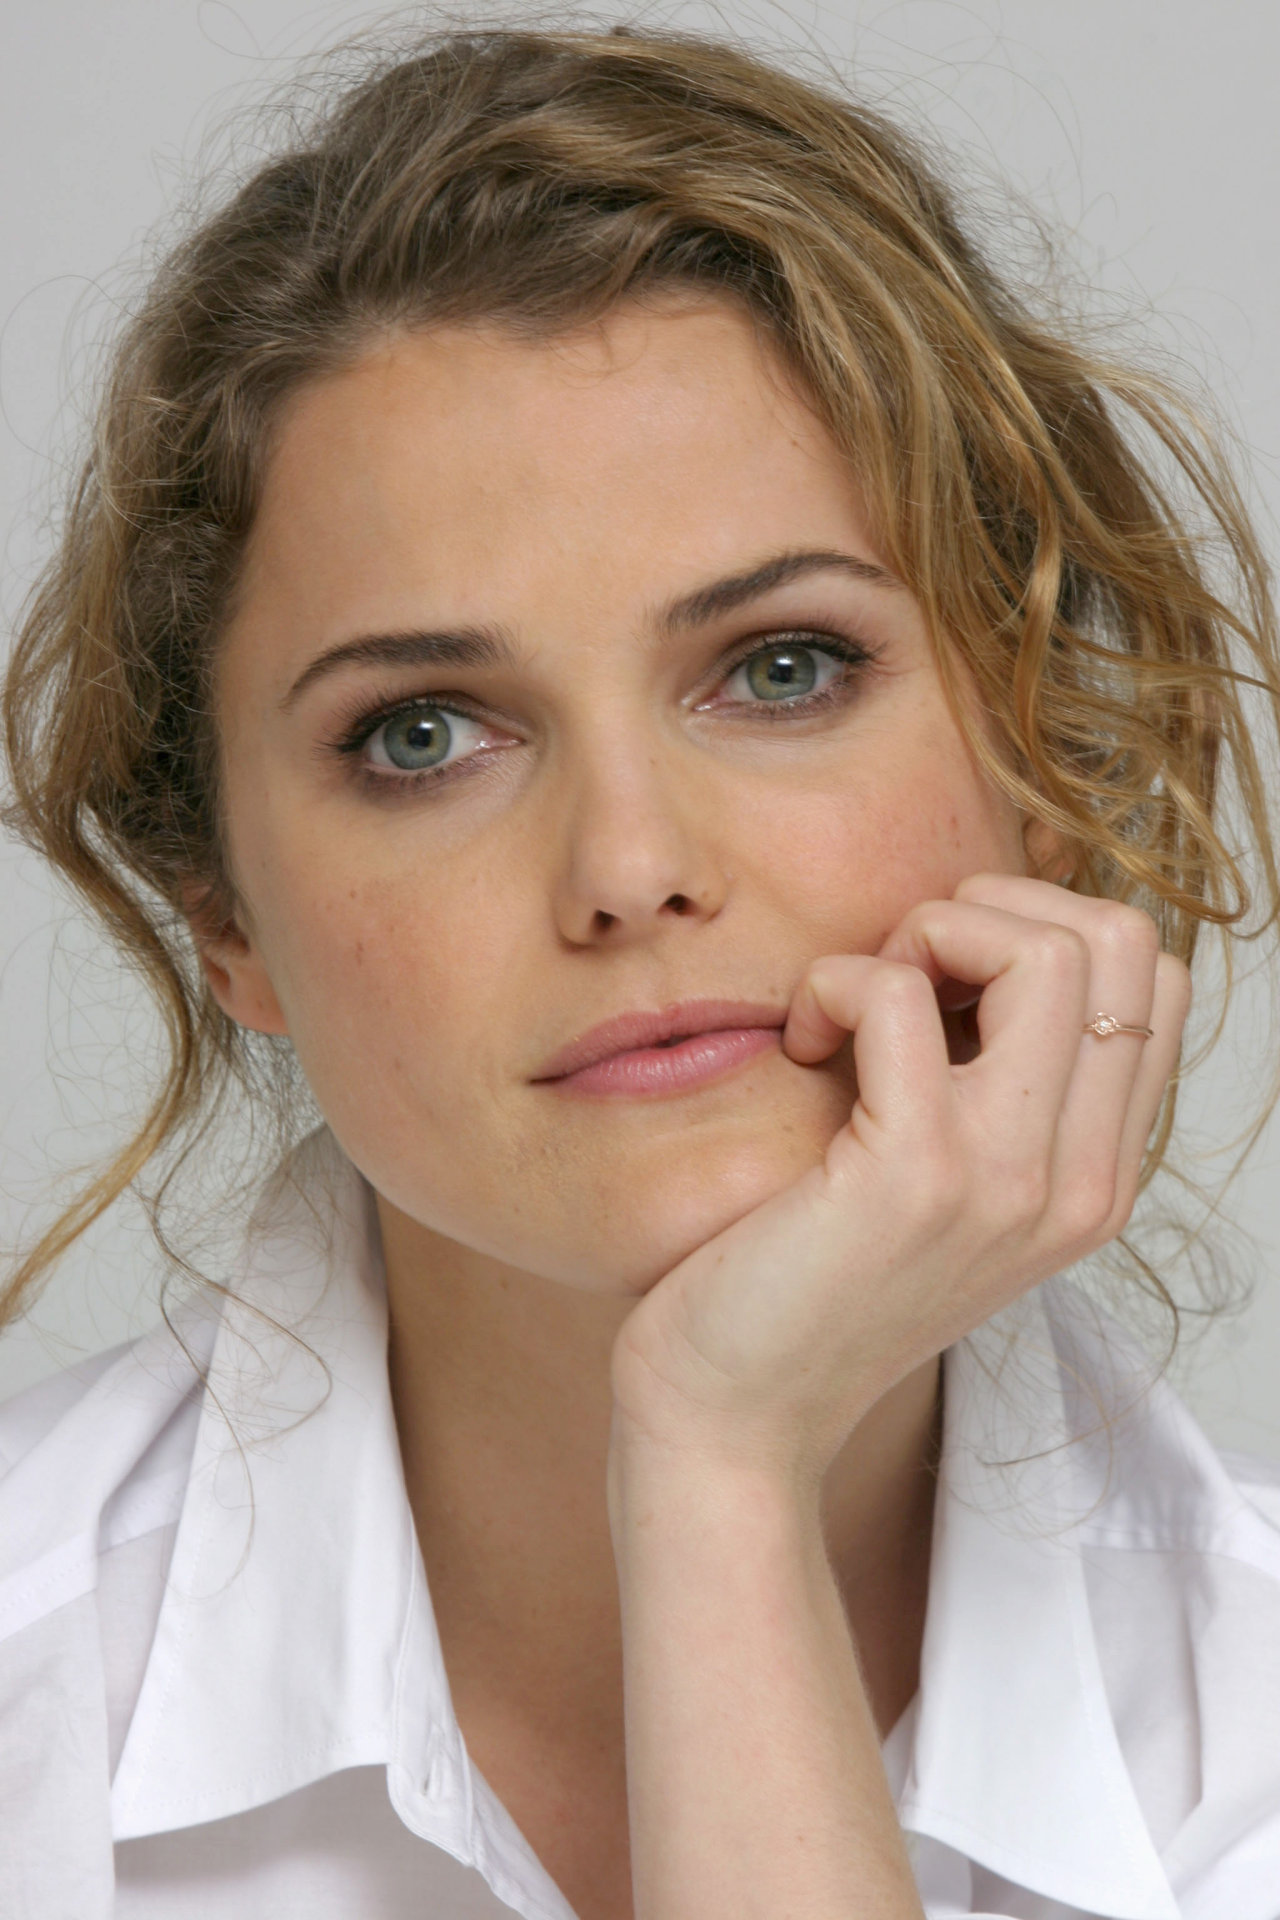 Keri Russell Net Worth, Age, Height, Husband, Profile, Movies